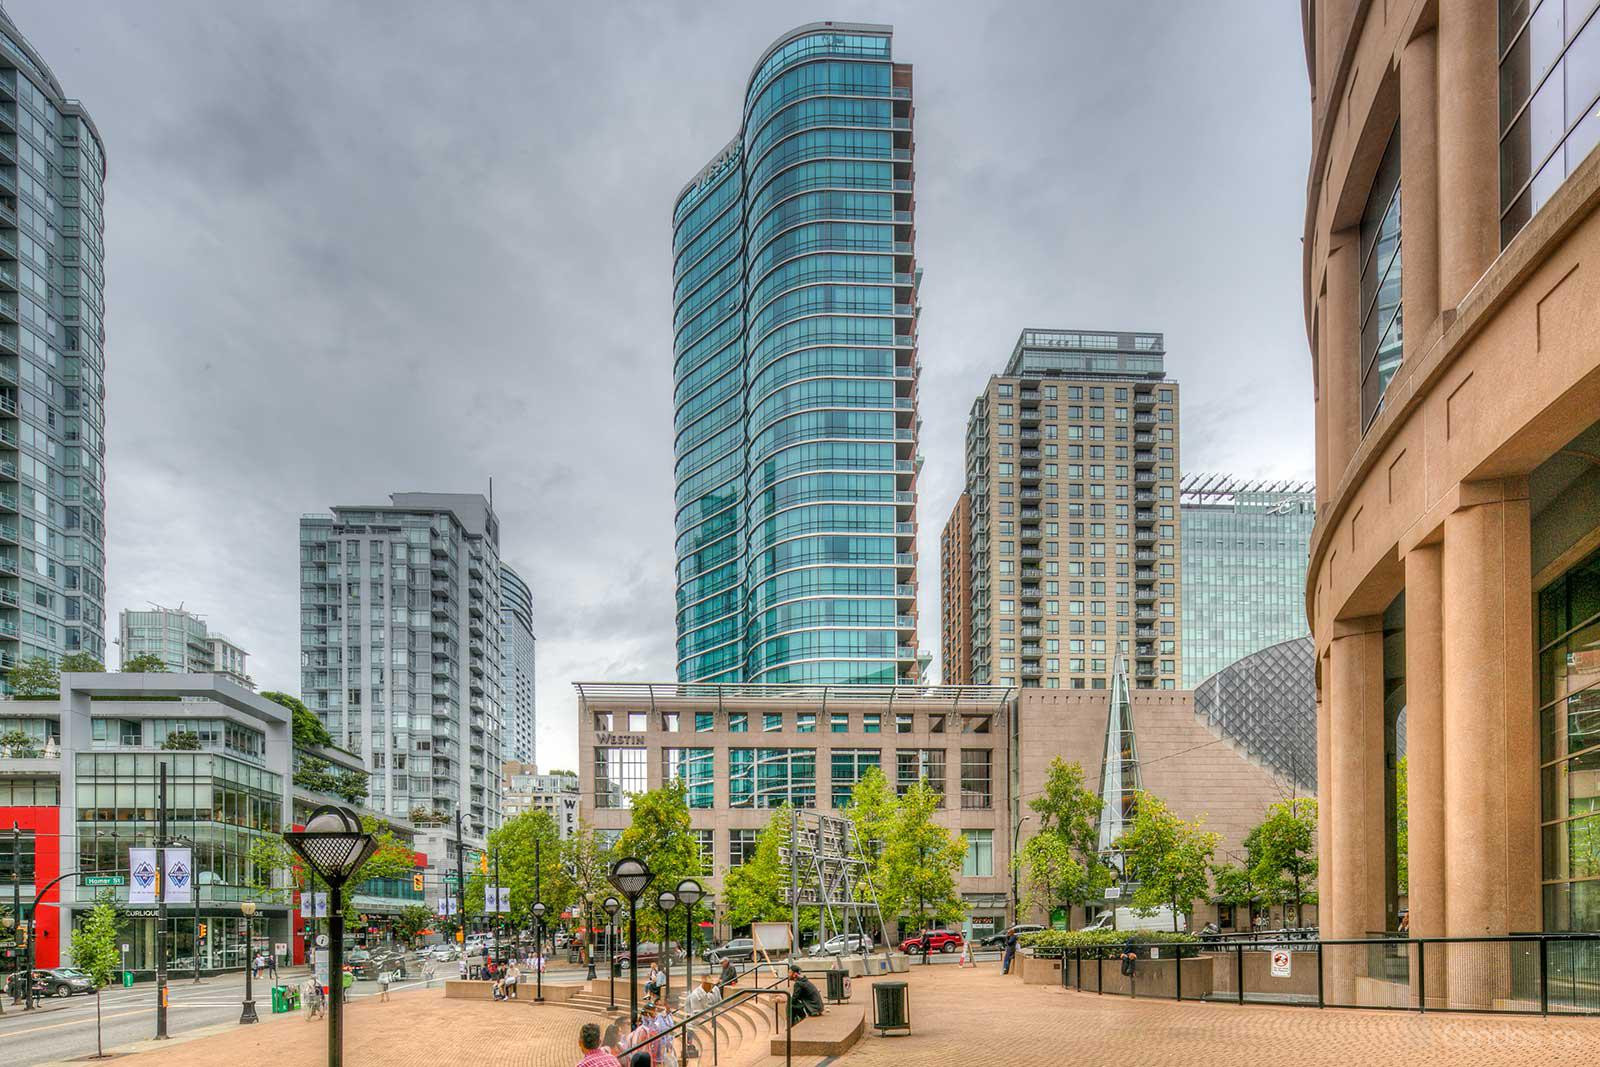 The Westin Grand Hotel at 433 Robson St, Vancouver 0